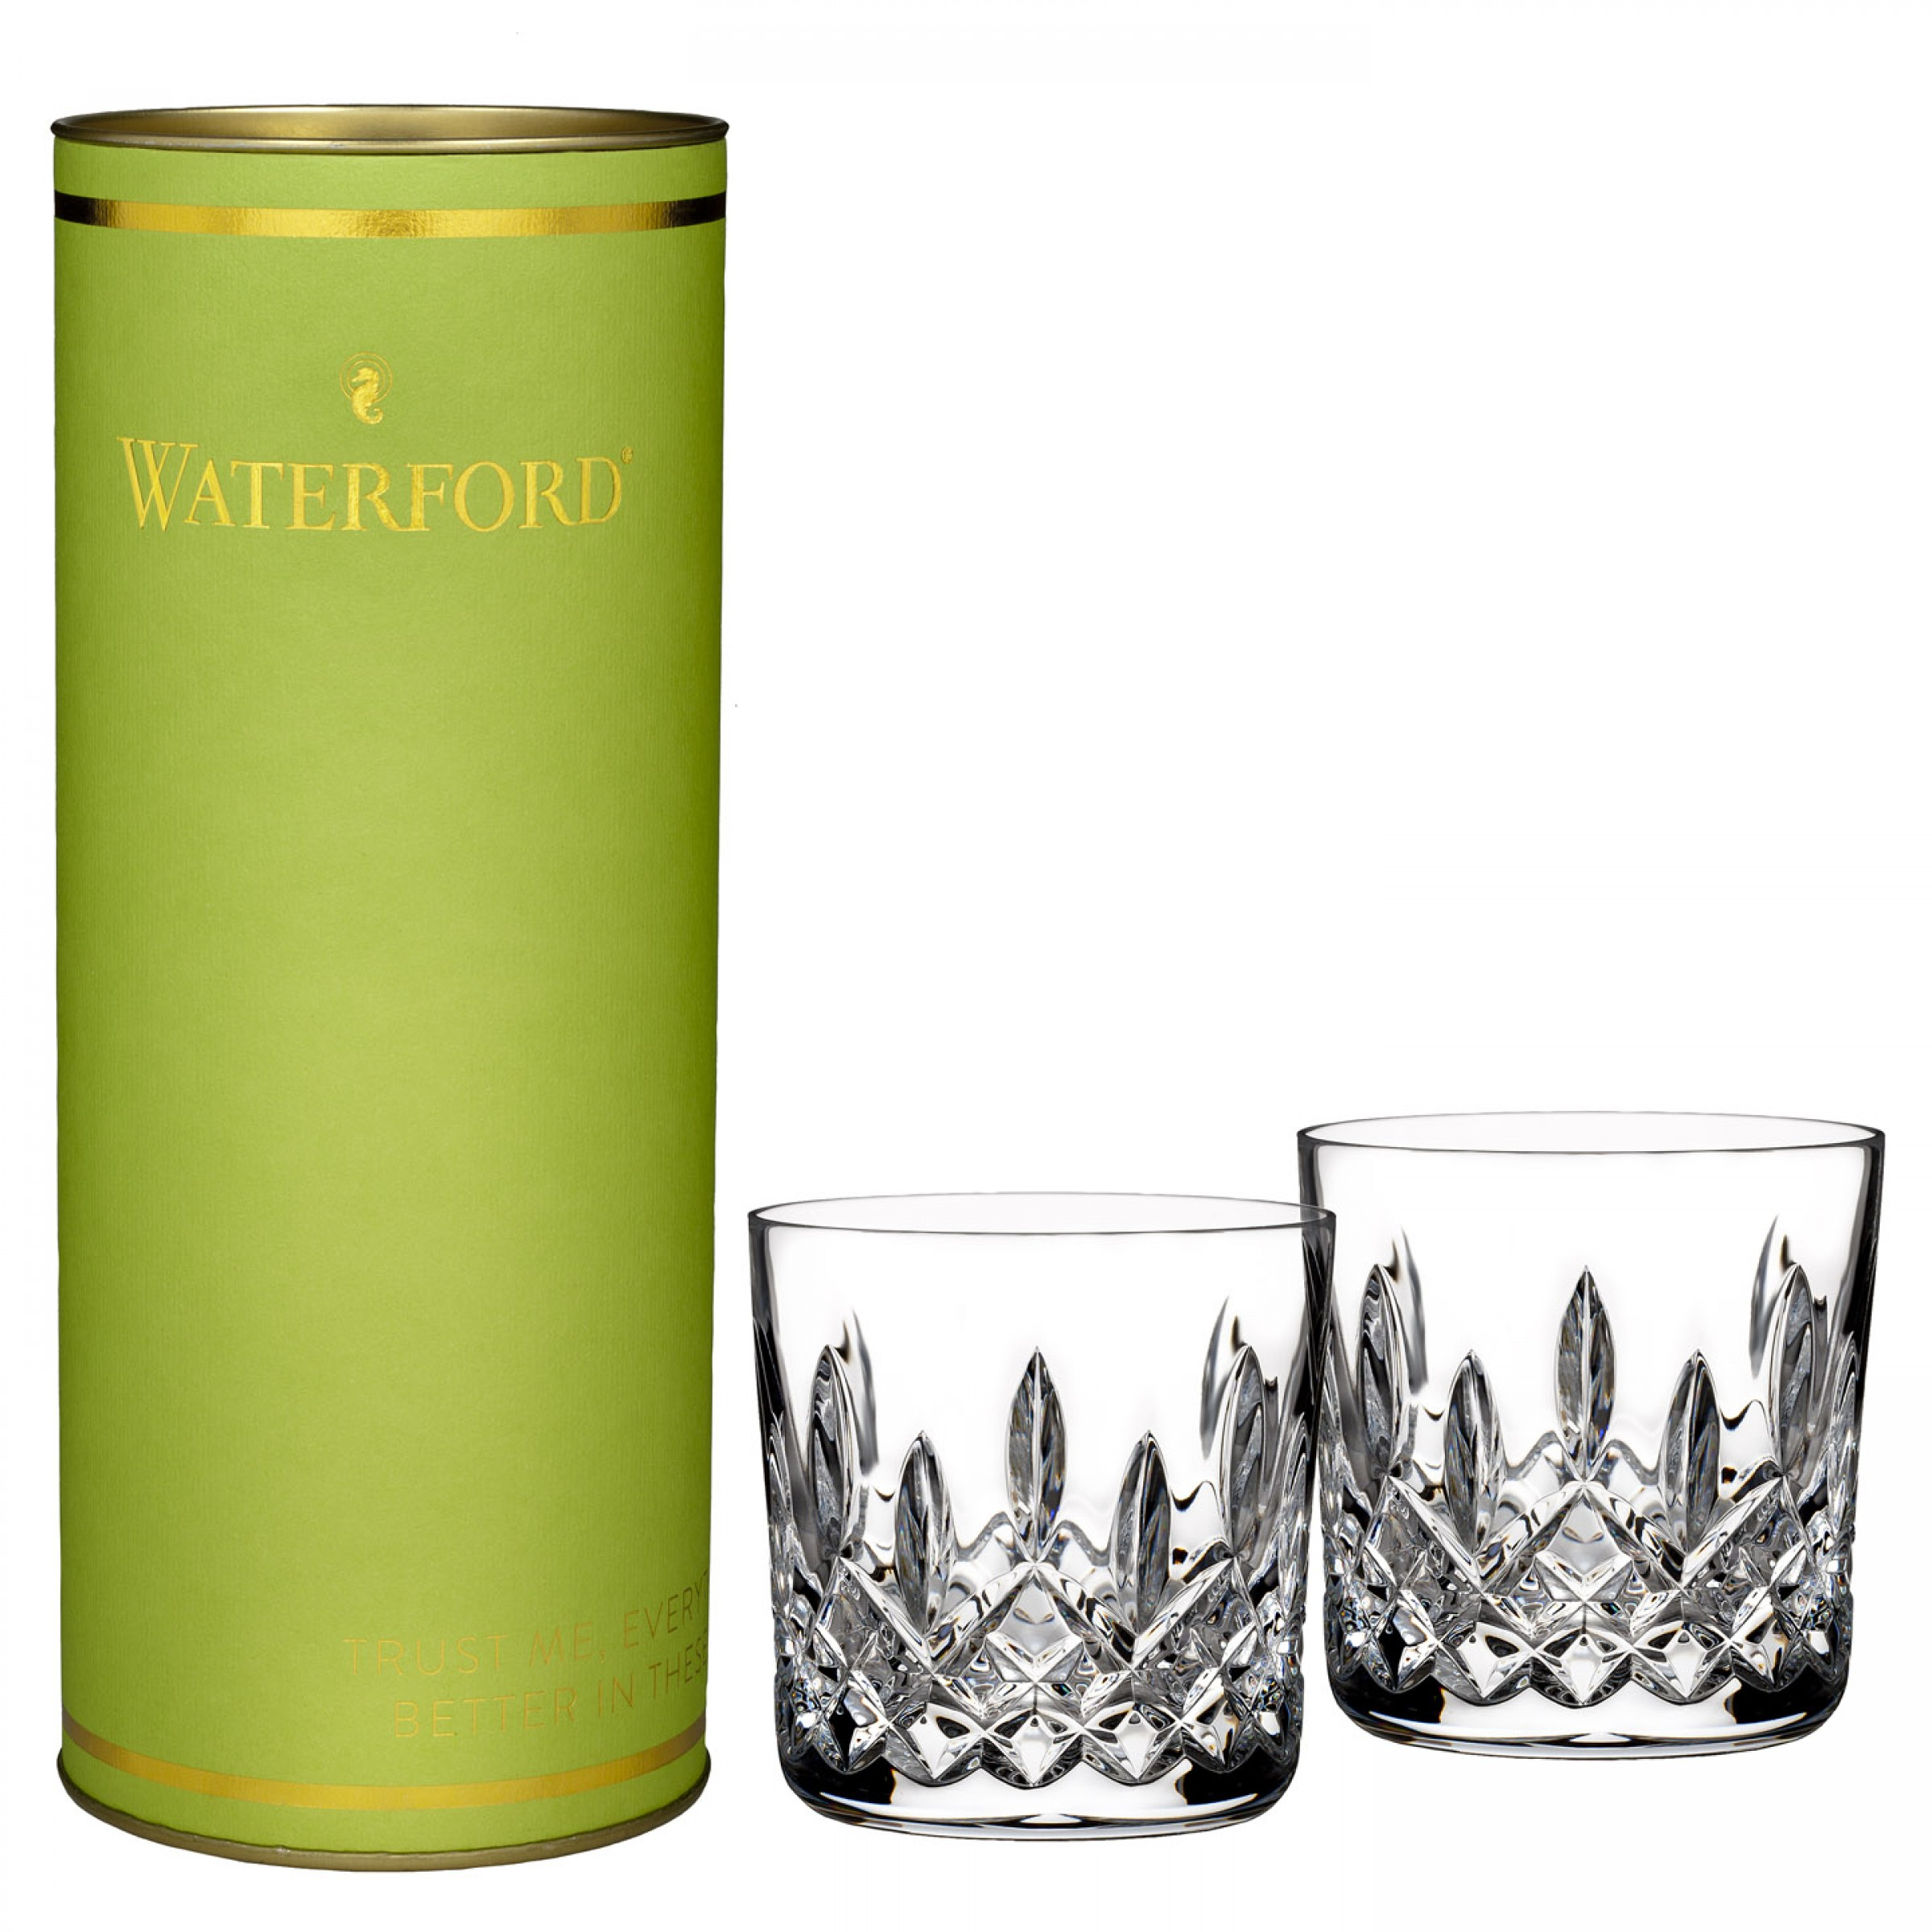 Waterford Giftology Lismore 9oz Tumbler, Pair